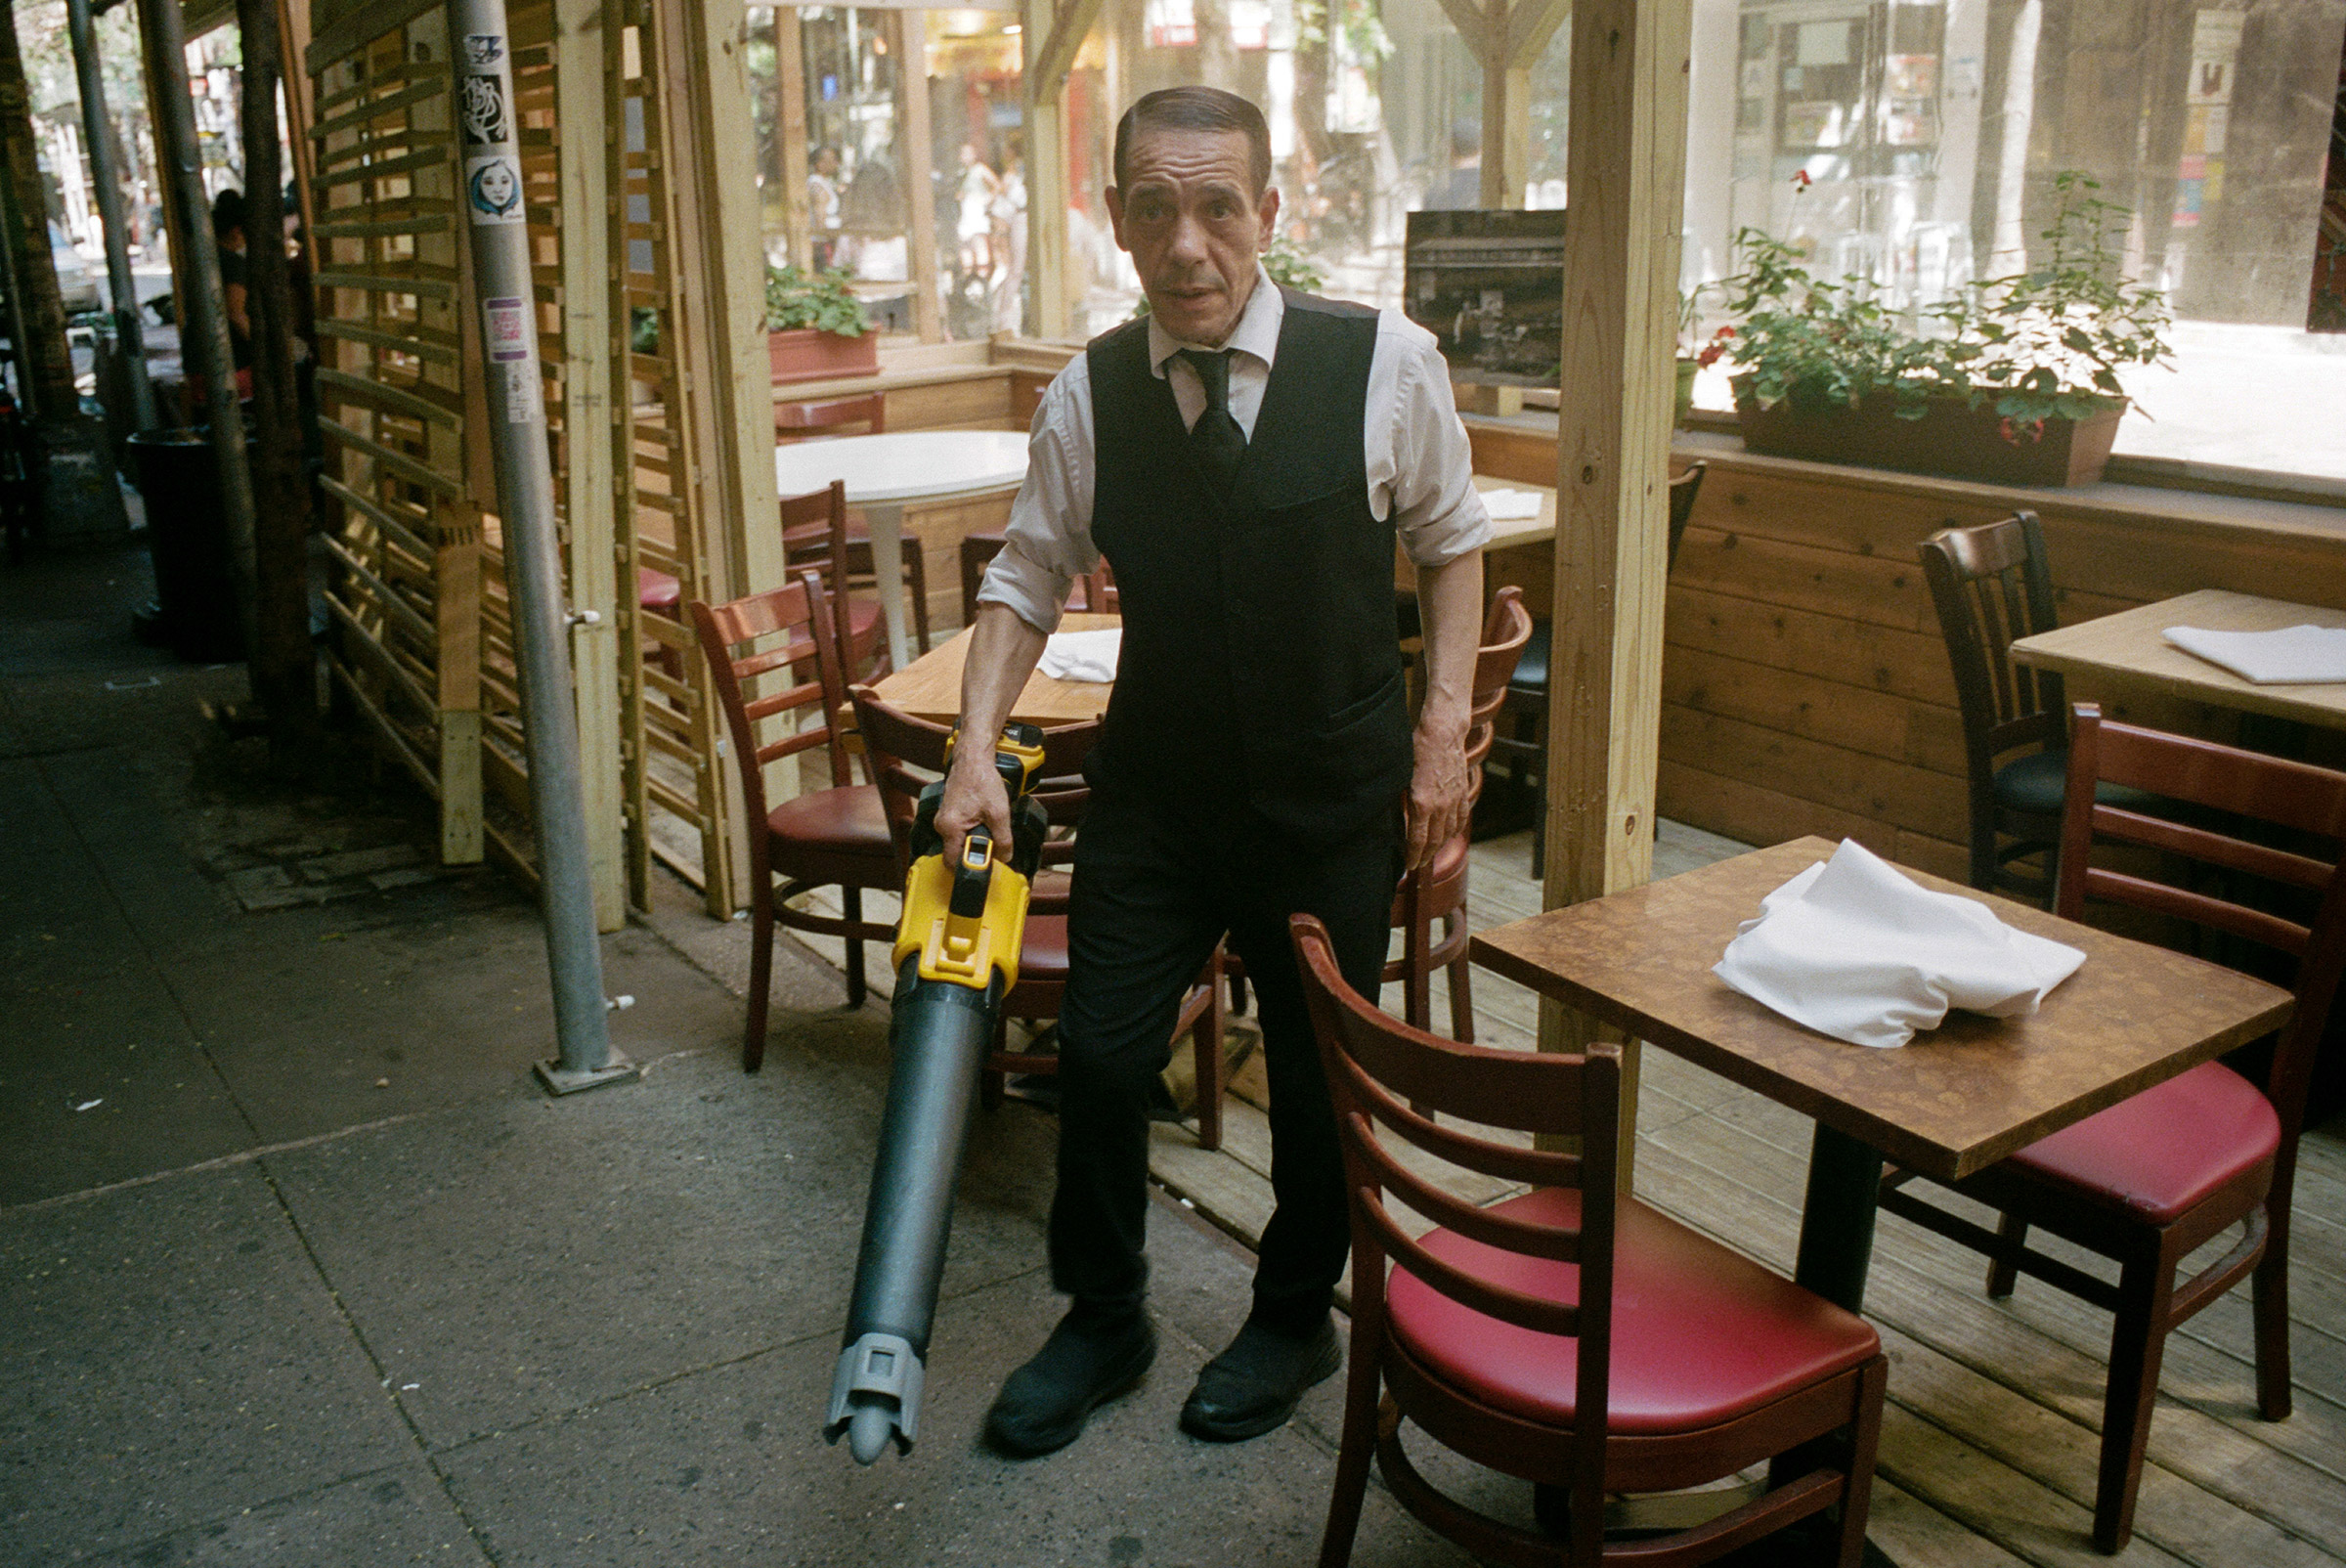 A maître d' cleans an outdoor seating area with a blower before evening service on MacDougal Street, Aug. 12, 2021.